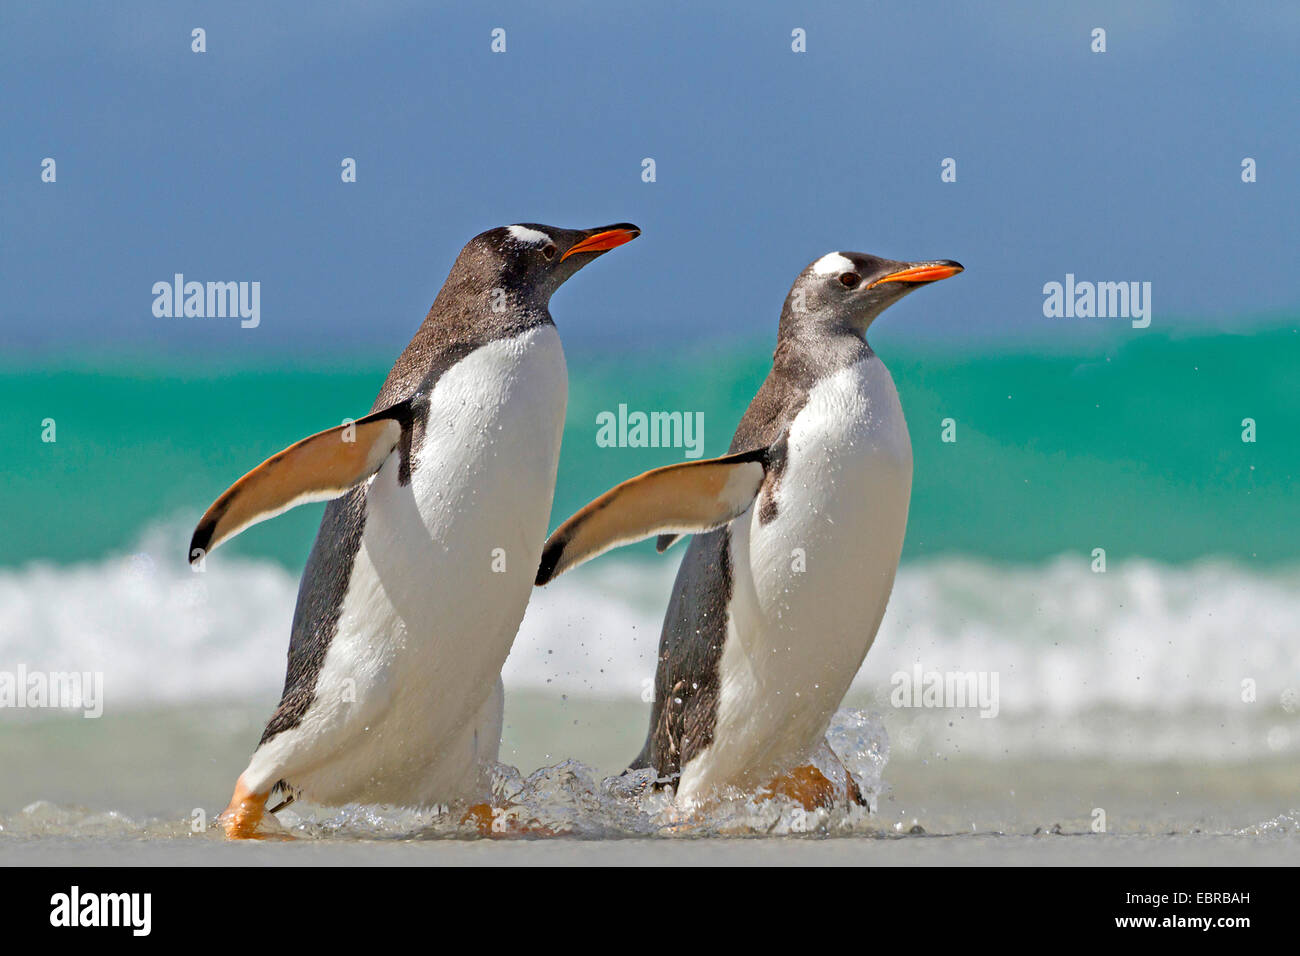 gentoo penguin (Pygoscelis papua), two penguins going on shore, Antarctica, Falkland Islands - Stock Image